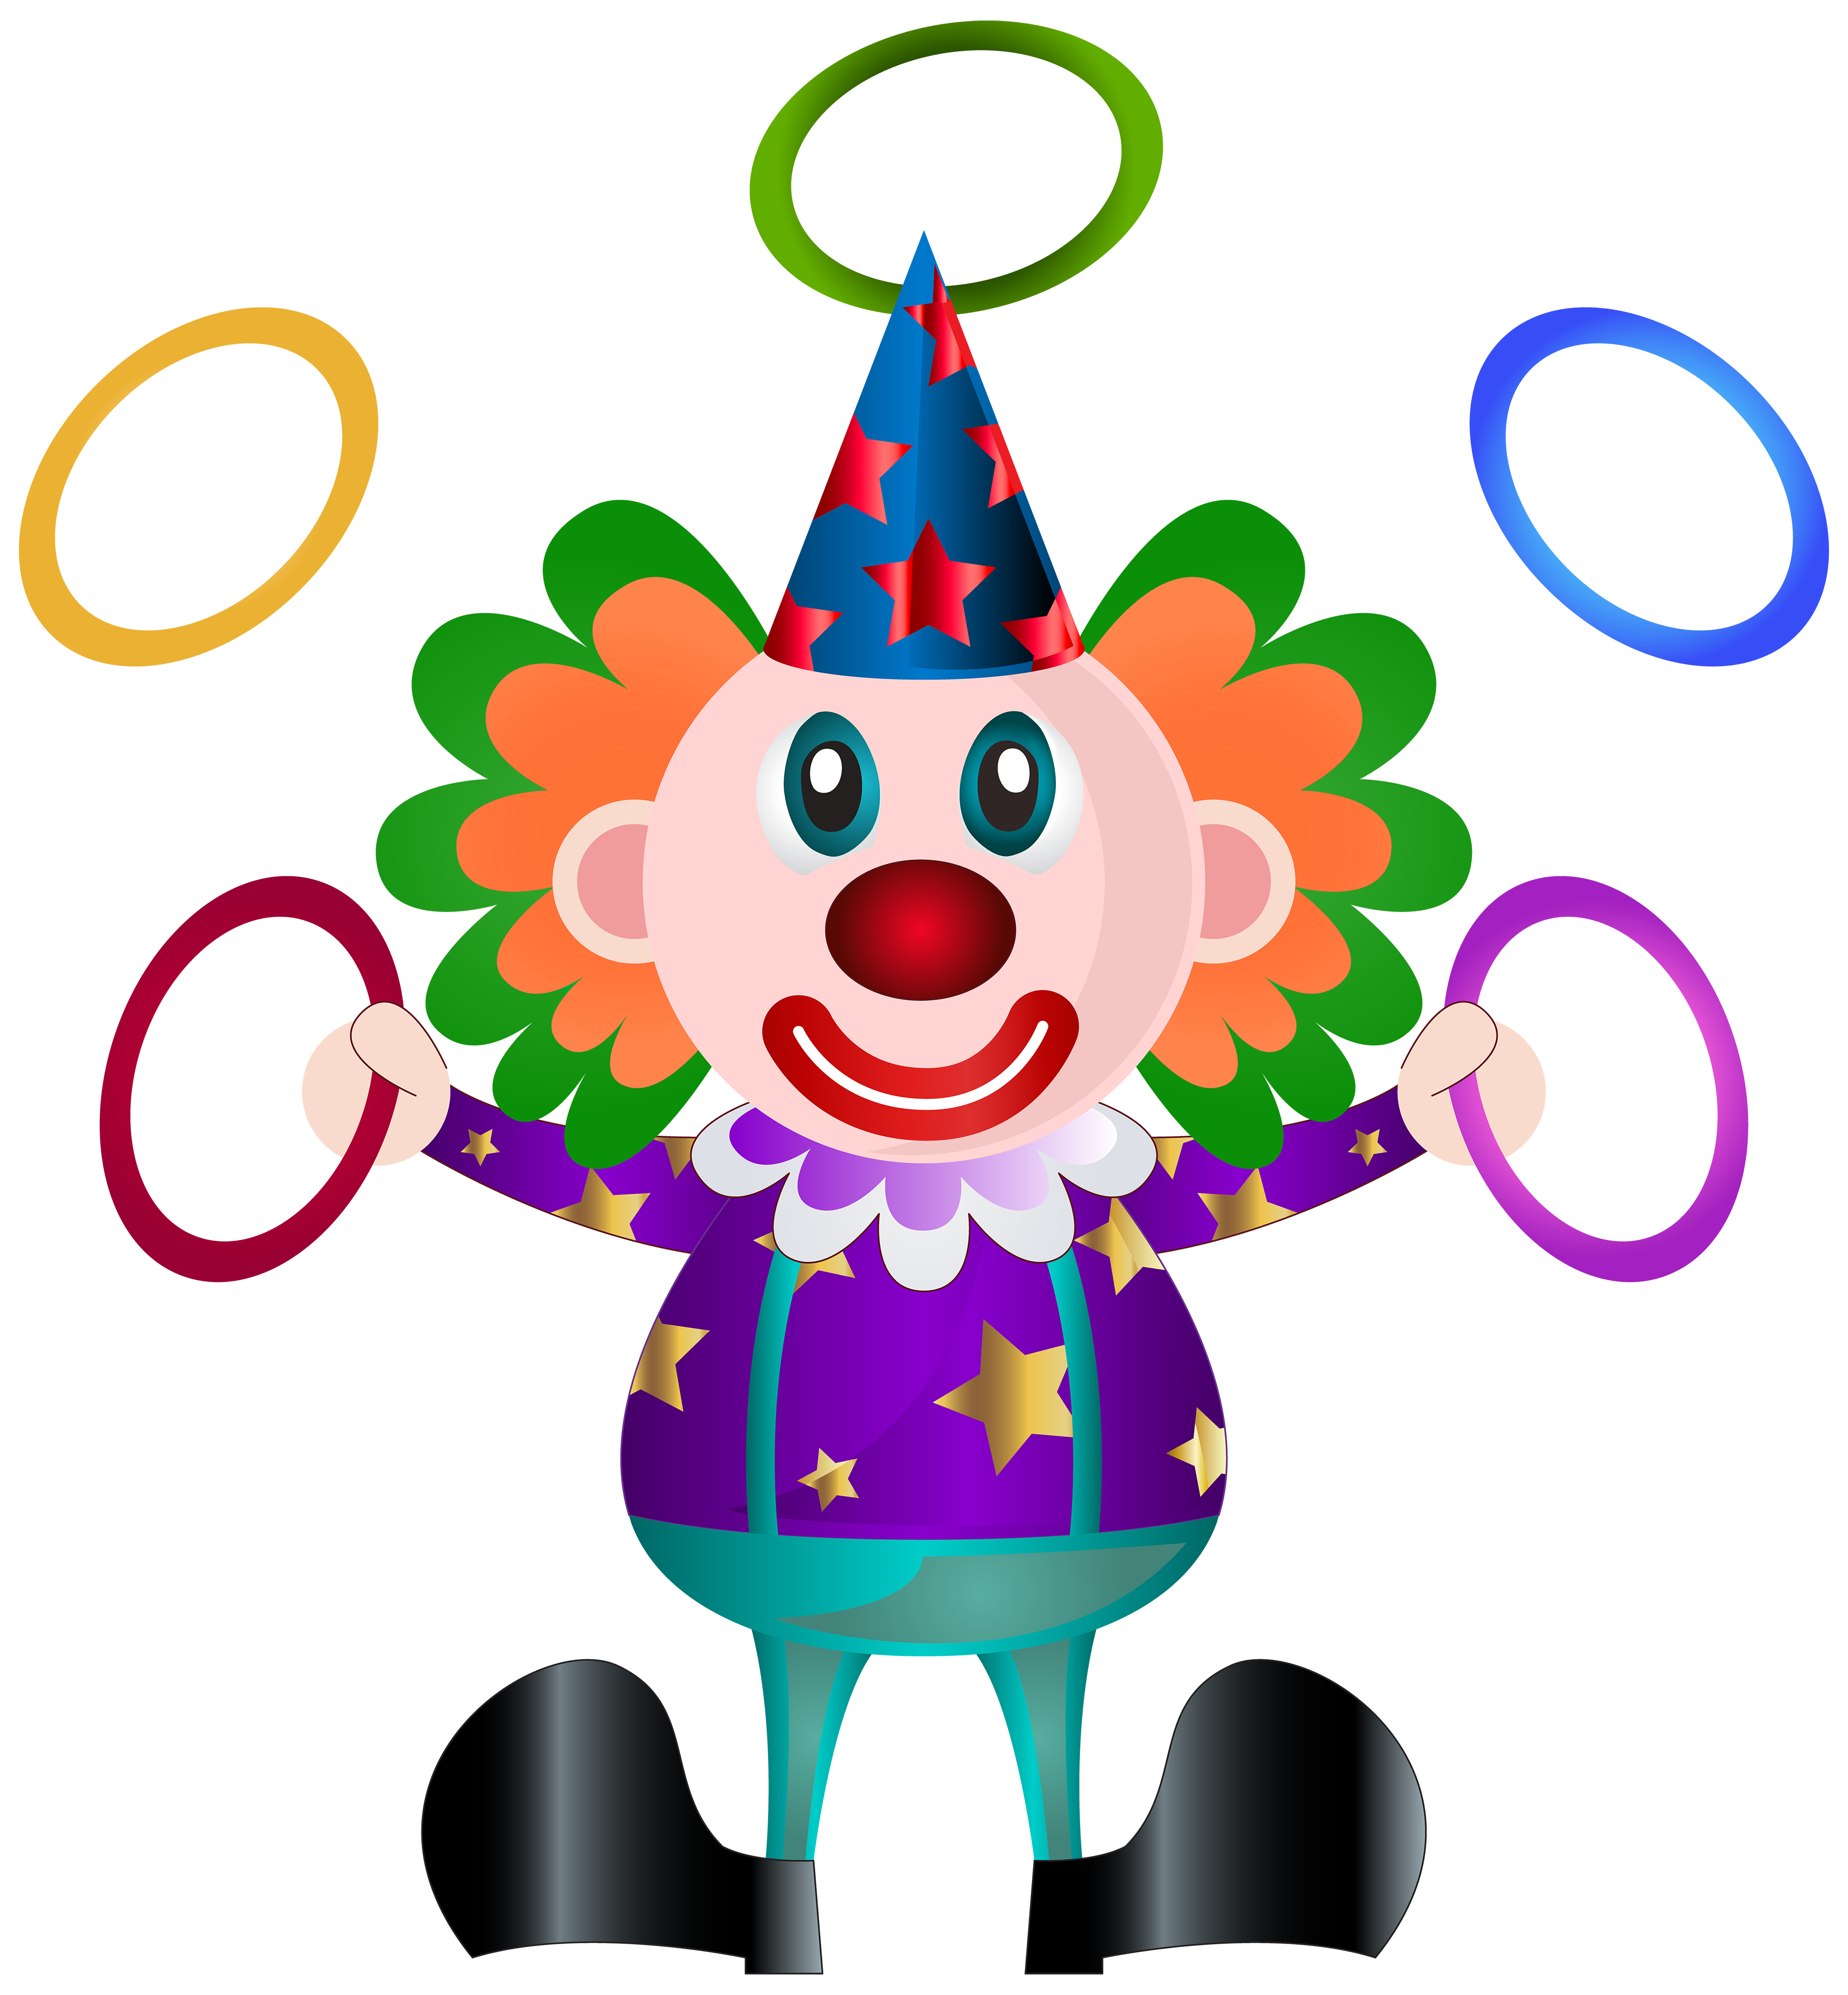 image royalty free download Png clip art picture. Clown clipart easy cartoon.